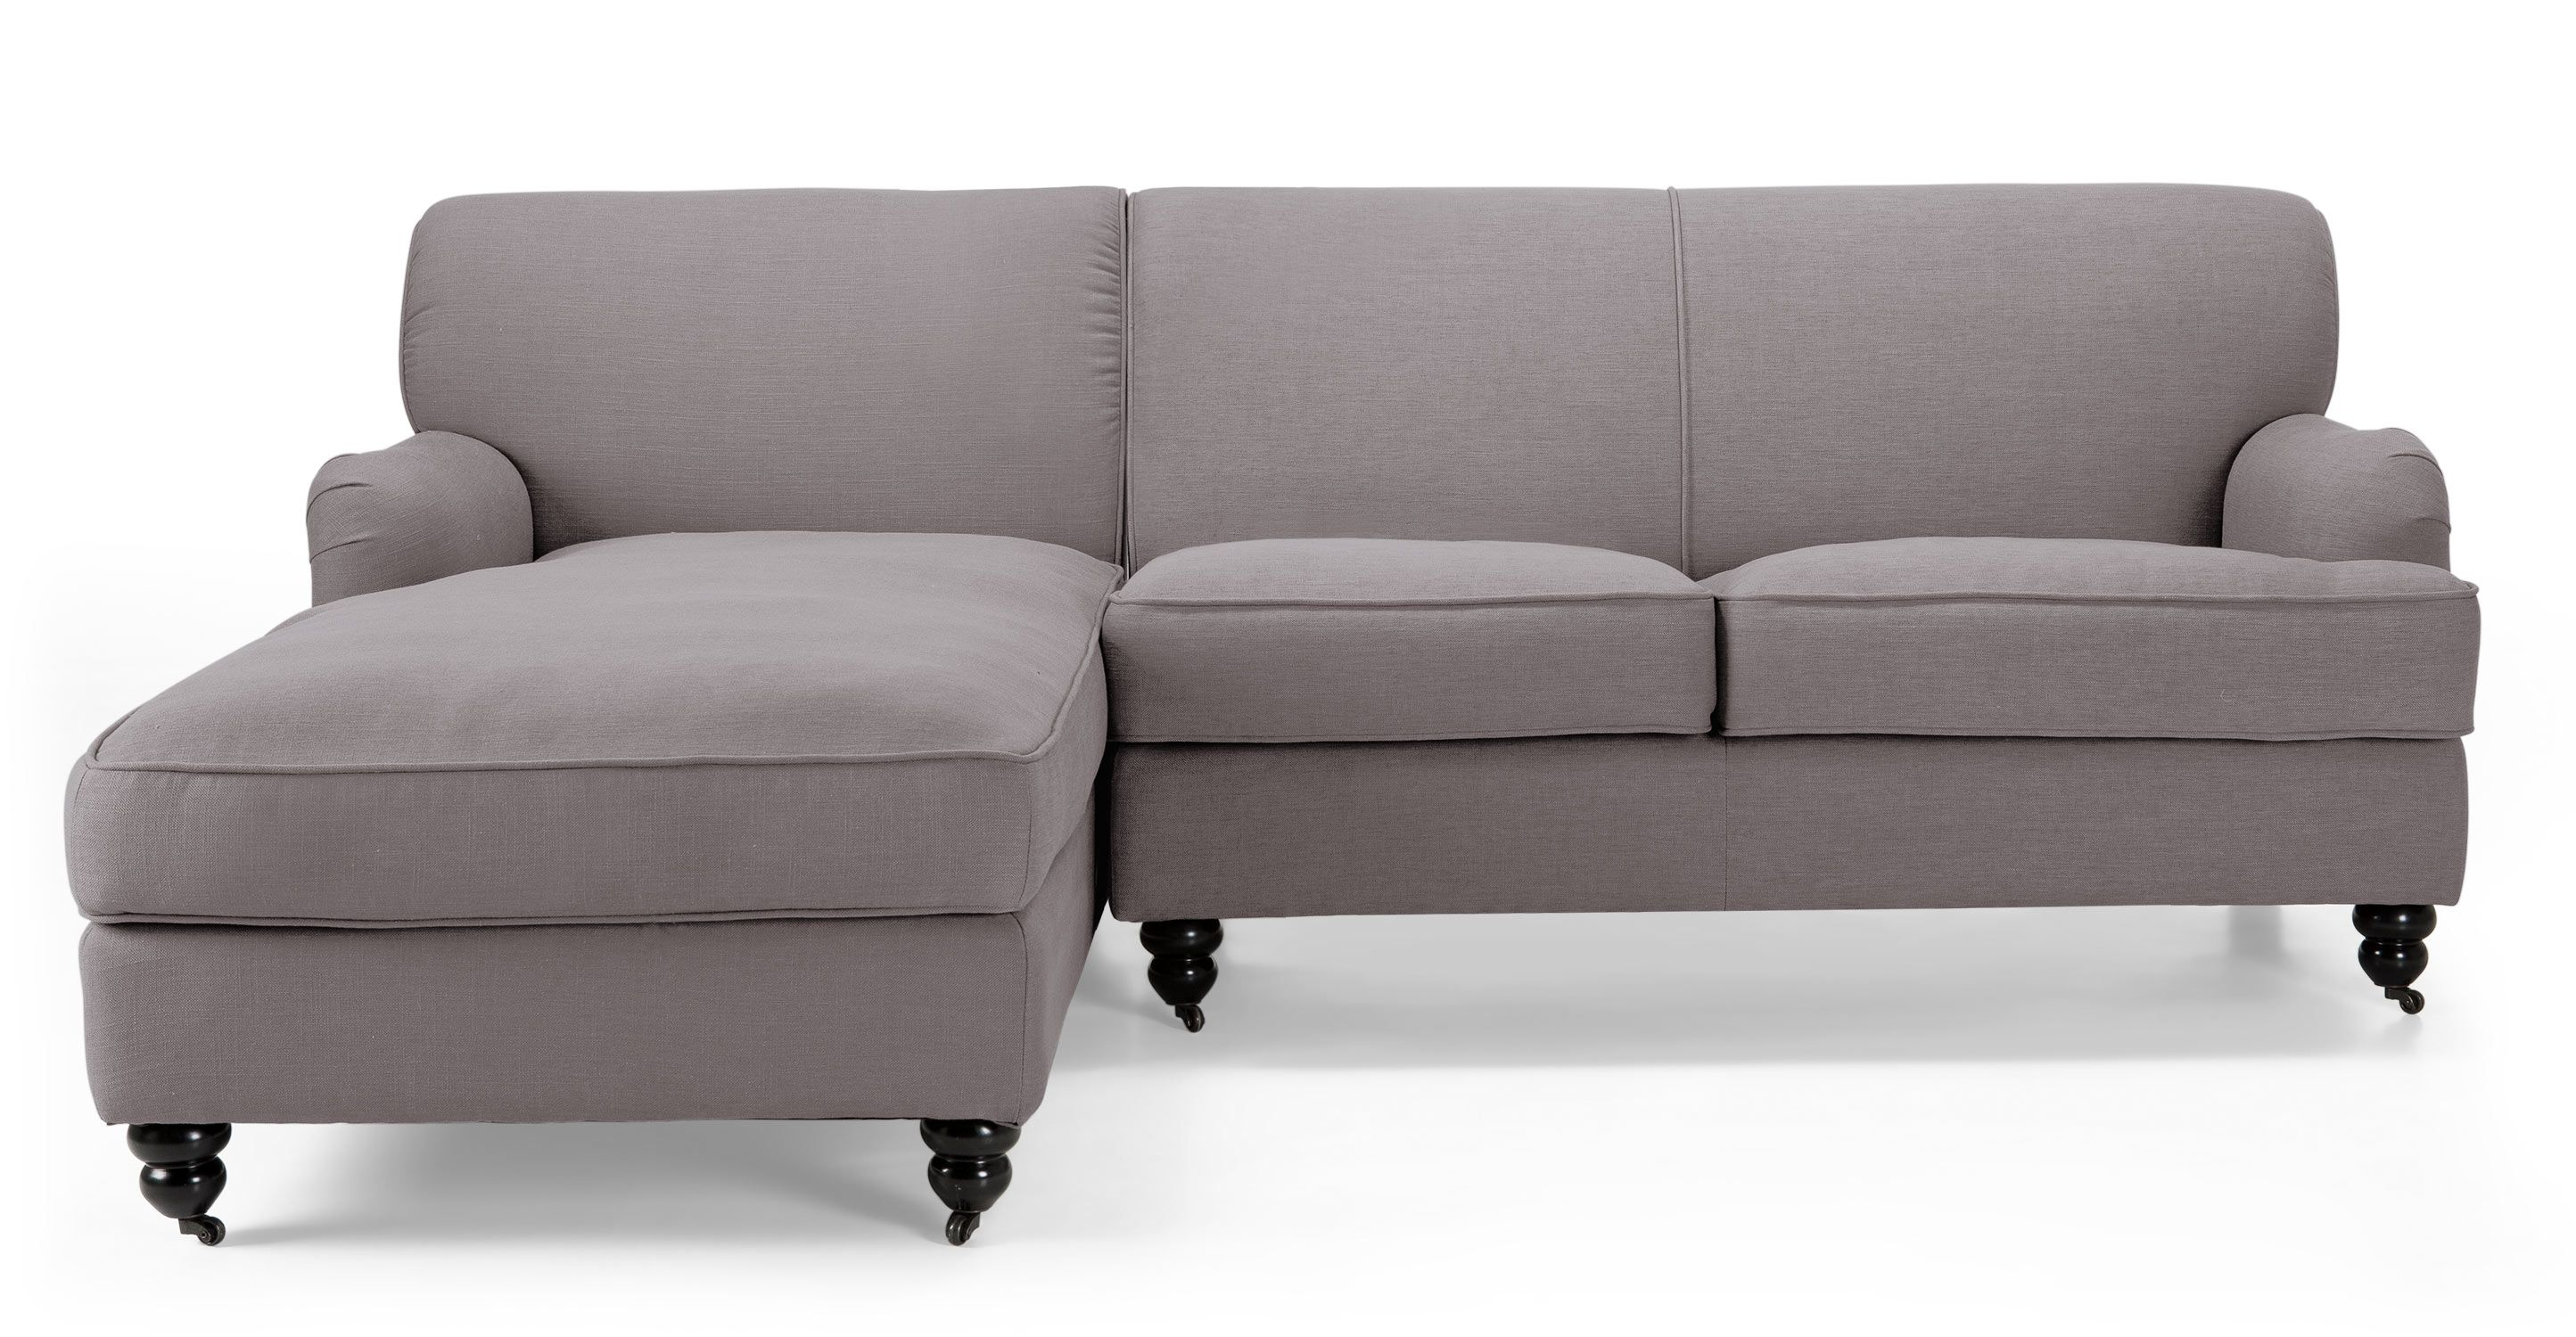 Orson Left Hand Facing Corner Unit, Graphite Grey - sofa? | Back ...